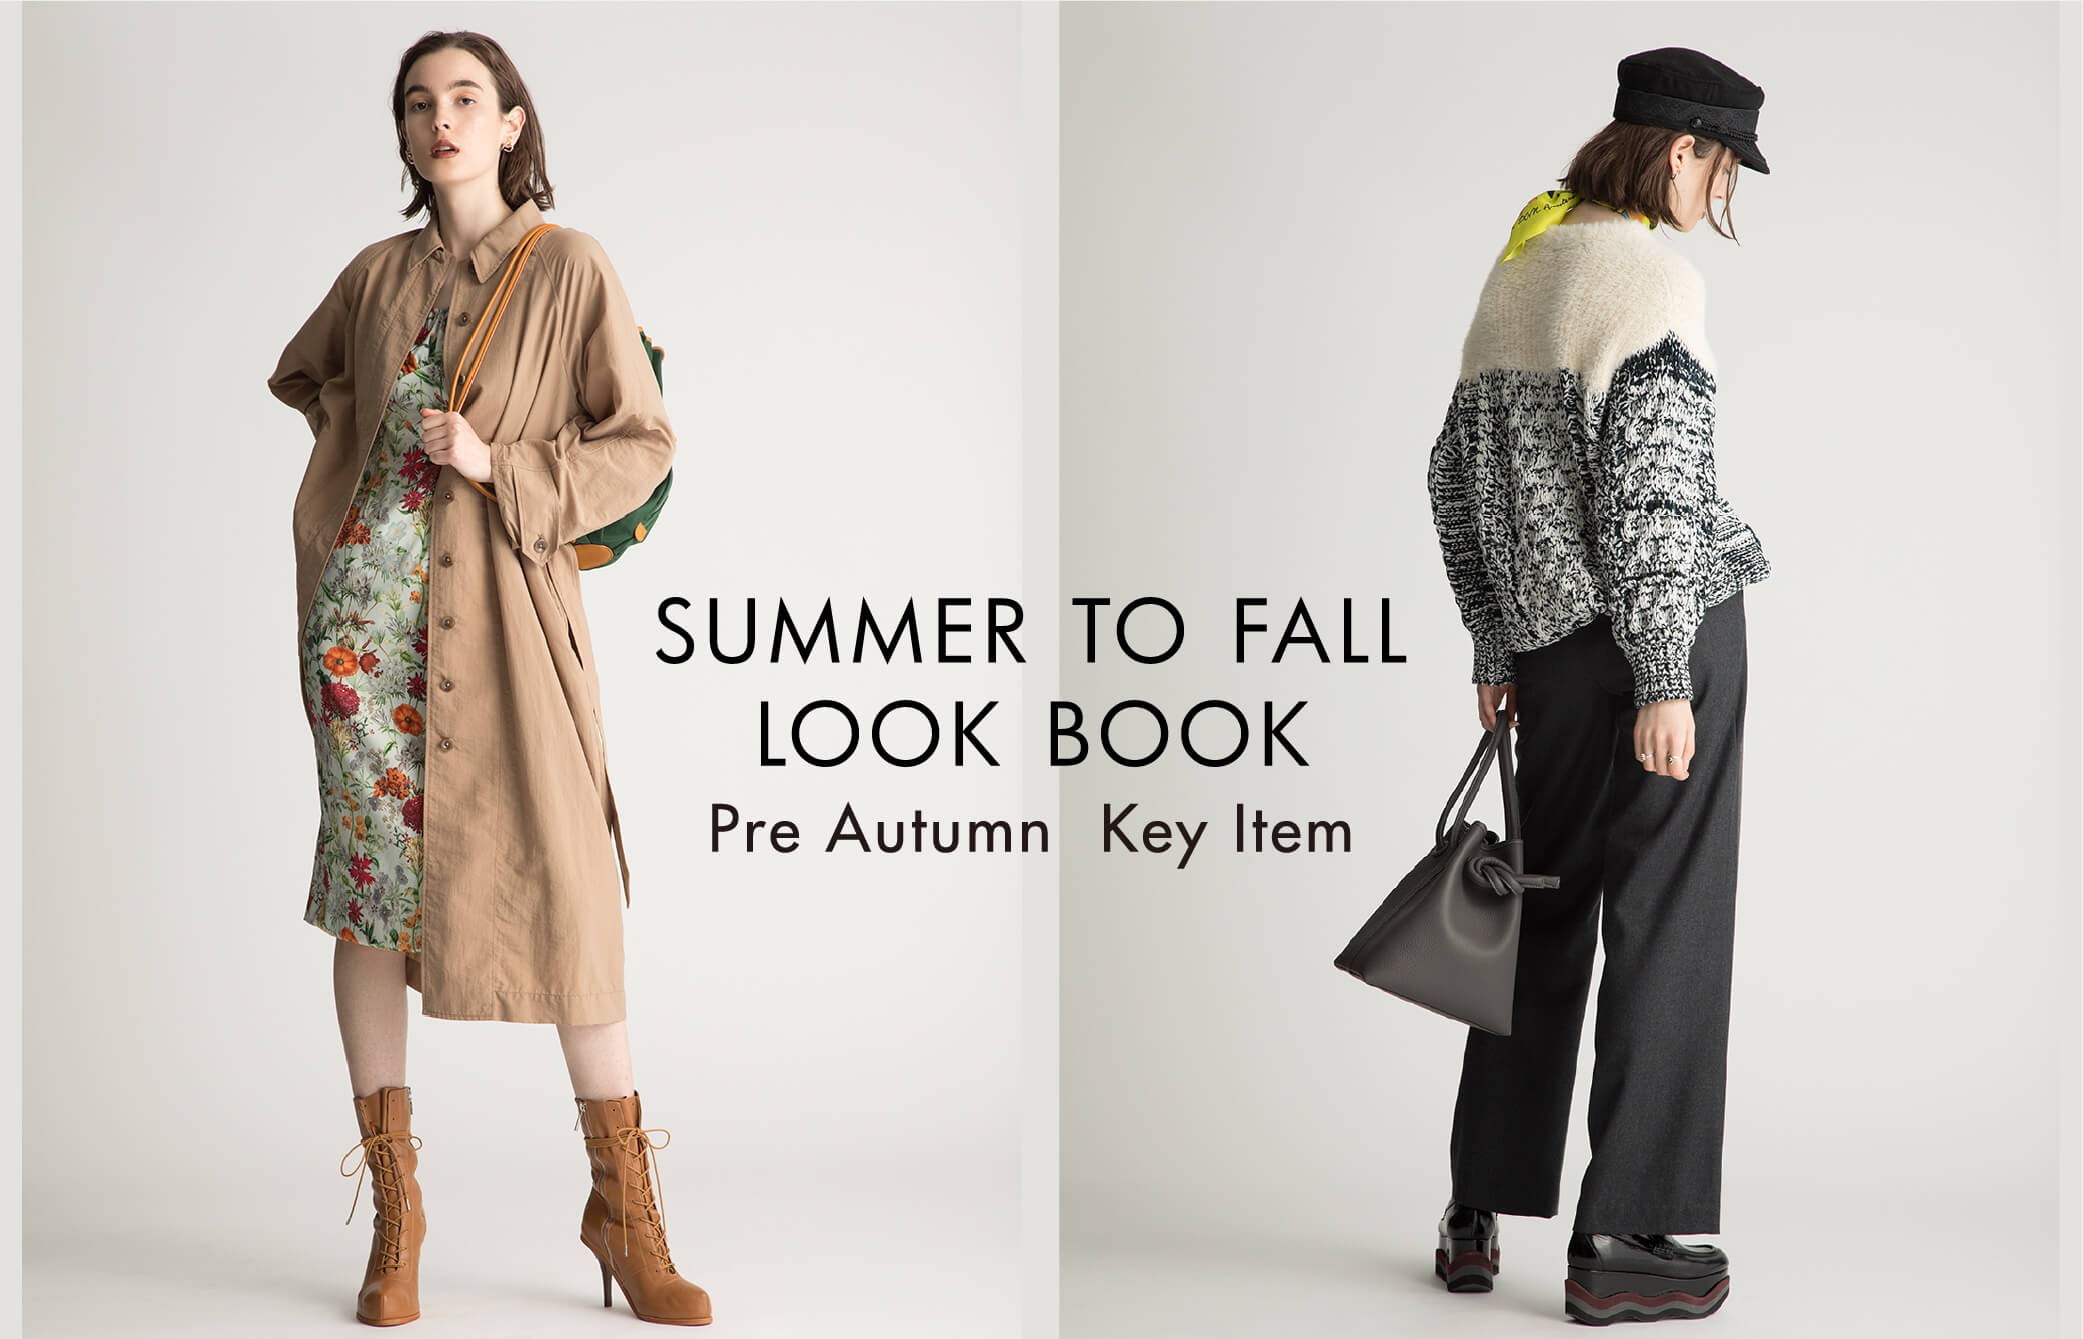 SUMMER TO FALL LOOK BOOK2